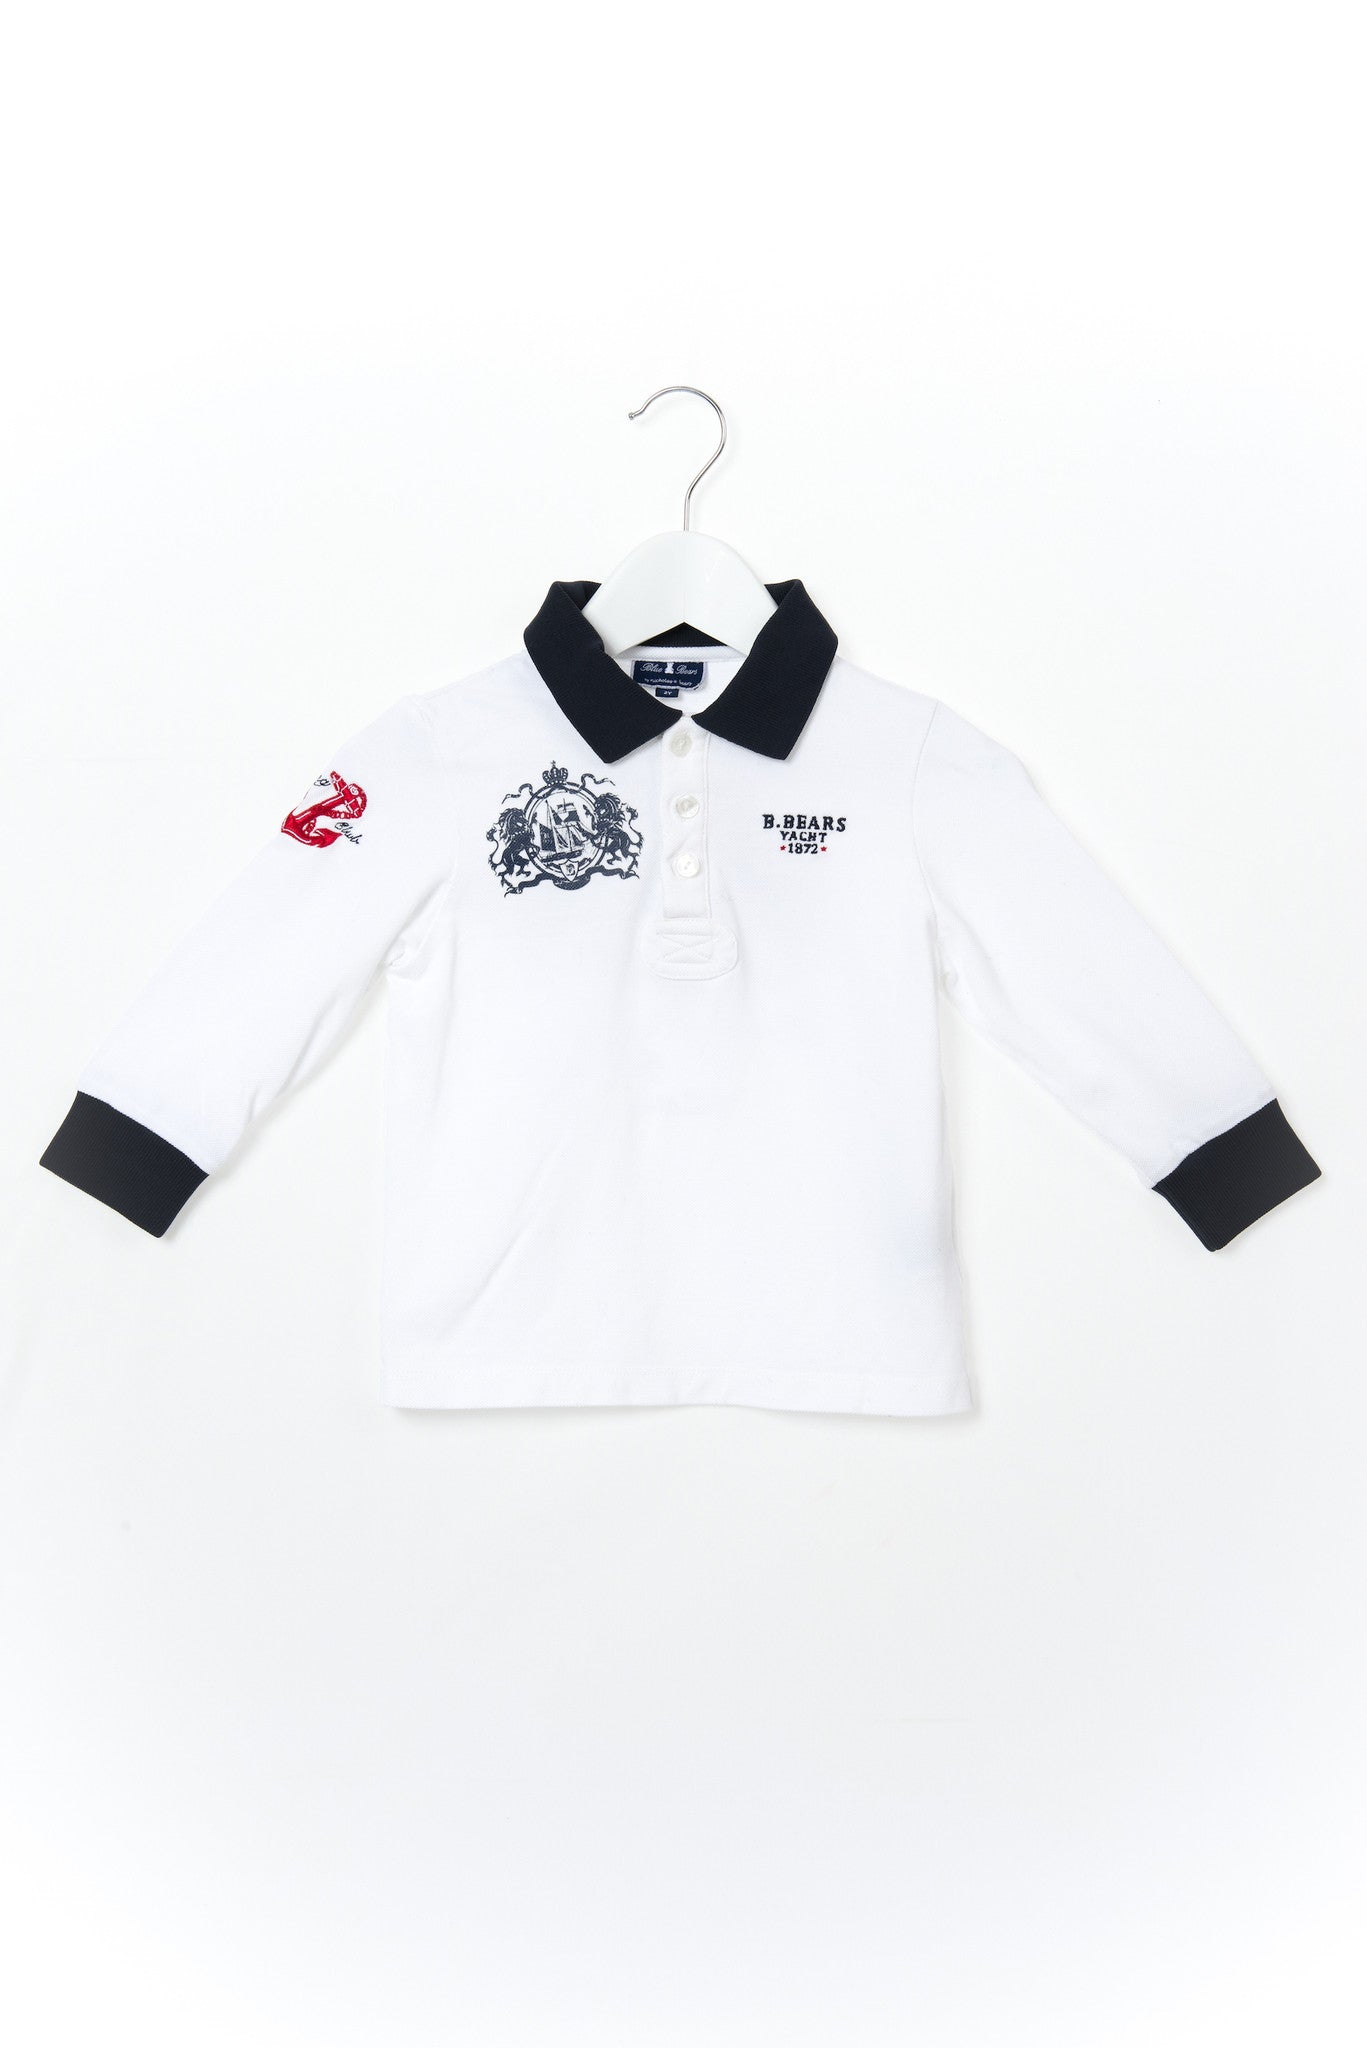 10001283 Nicholas & Bears Kids~Polo 2T at Retykle